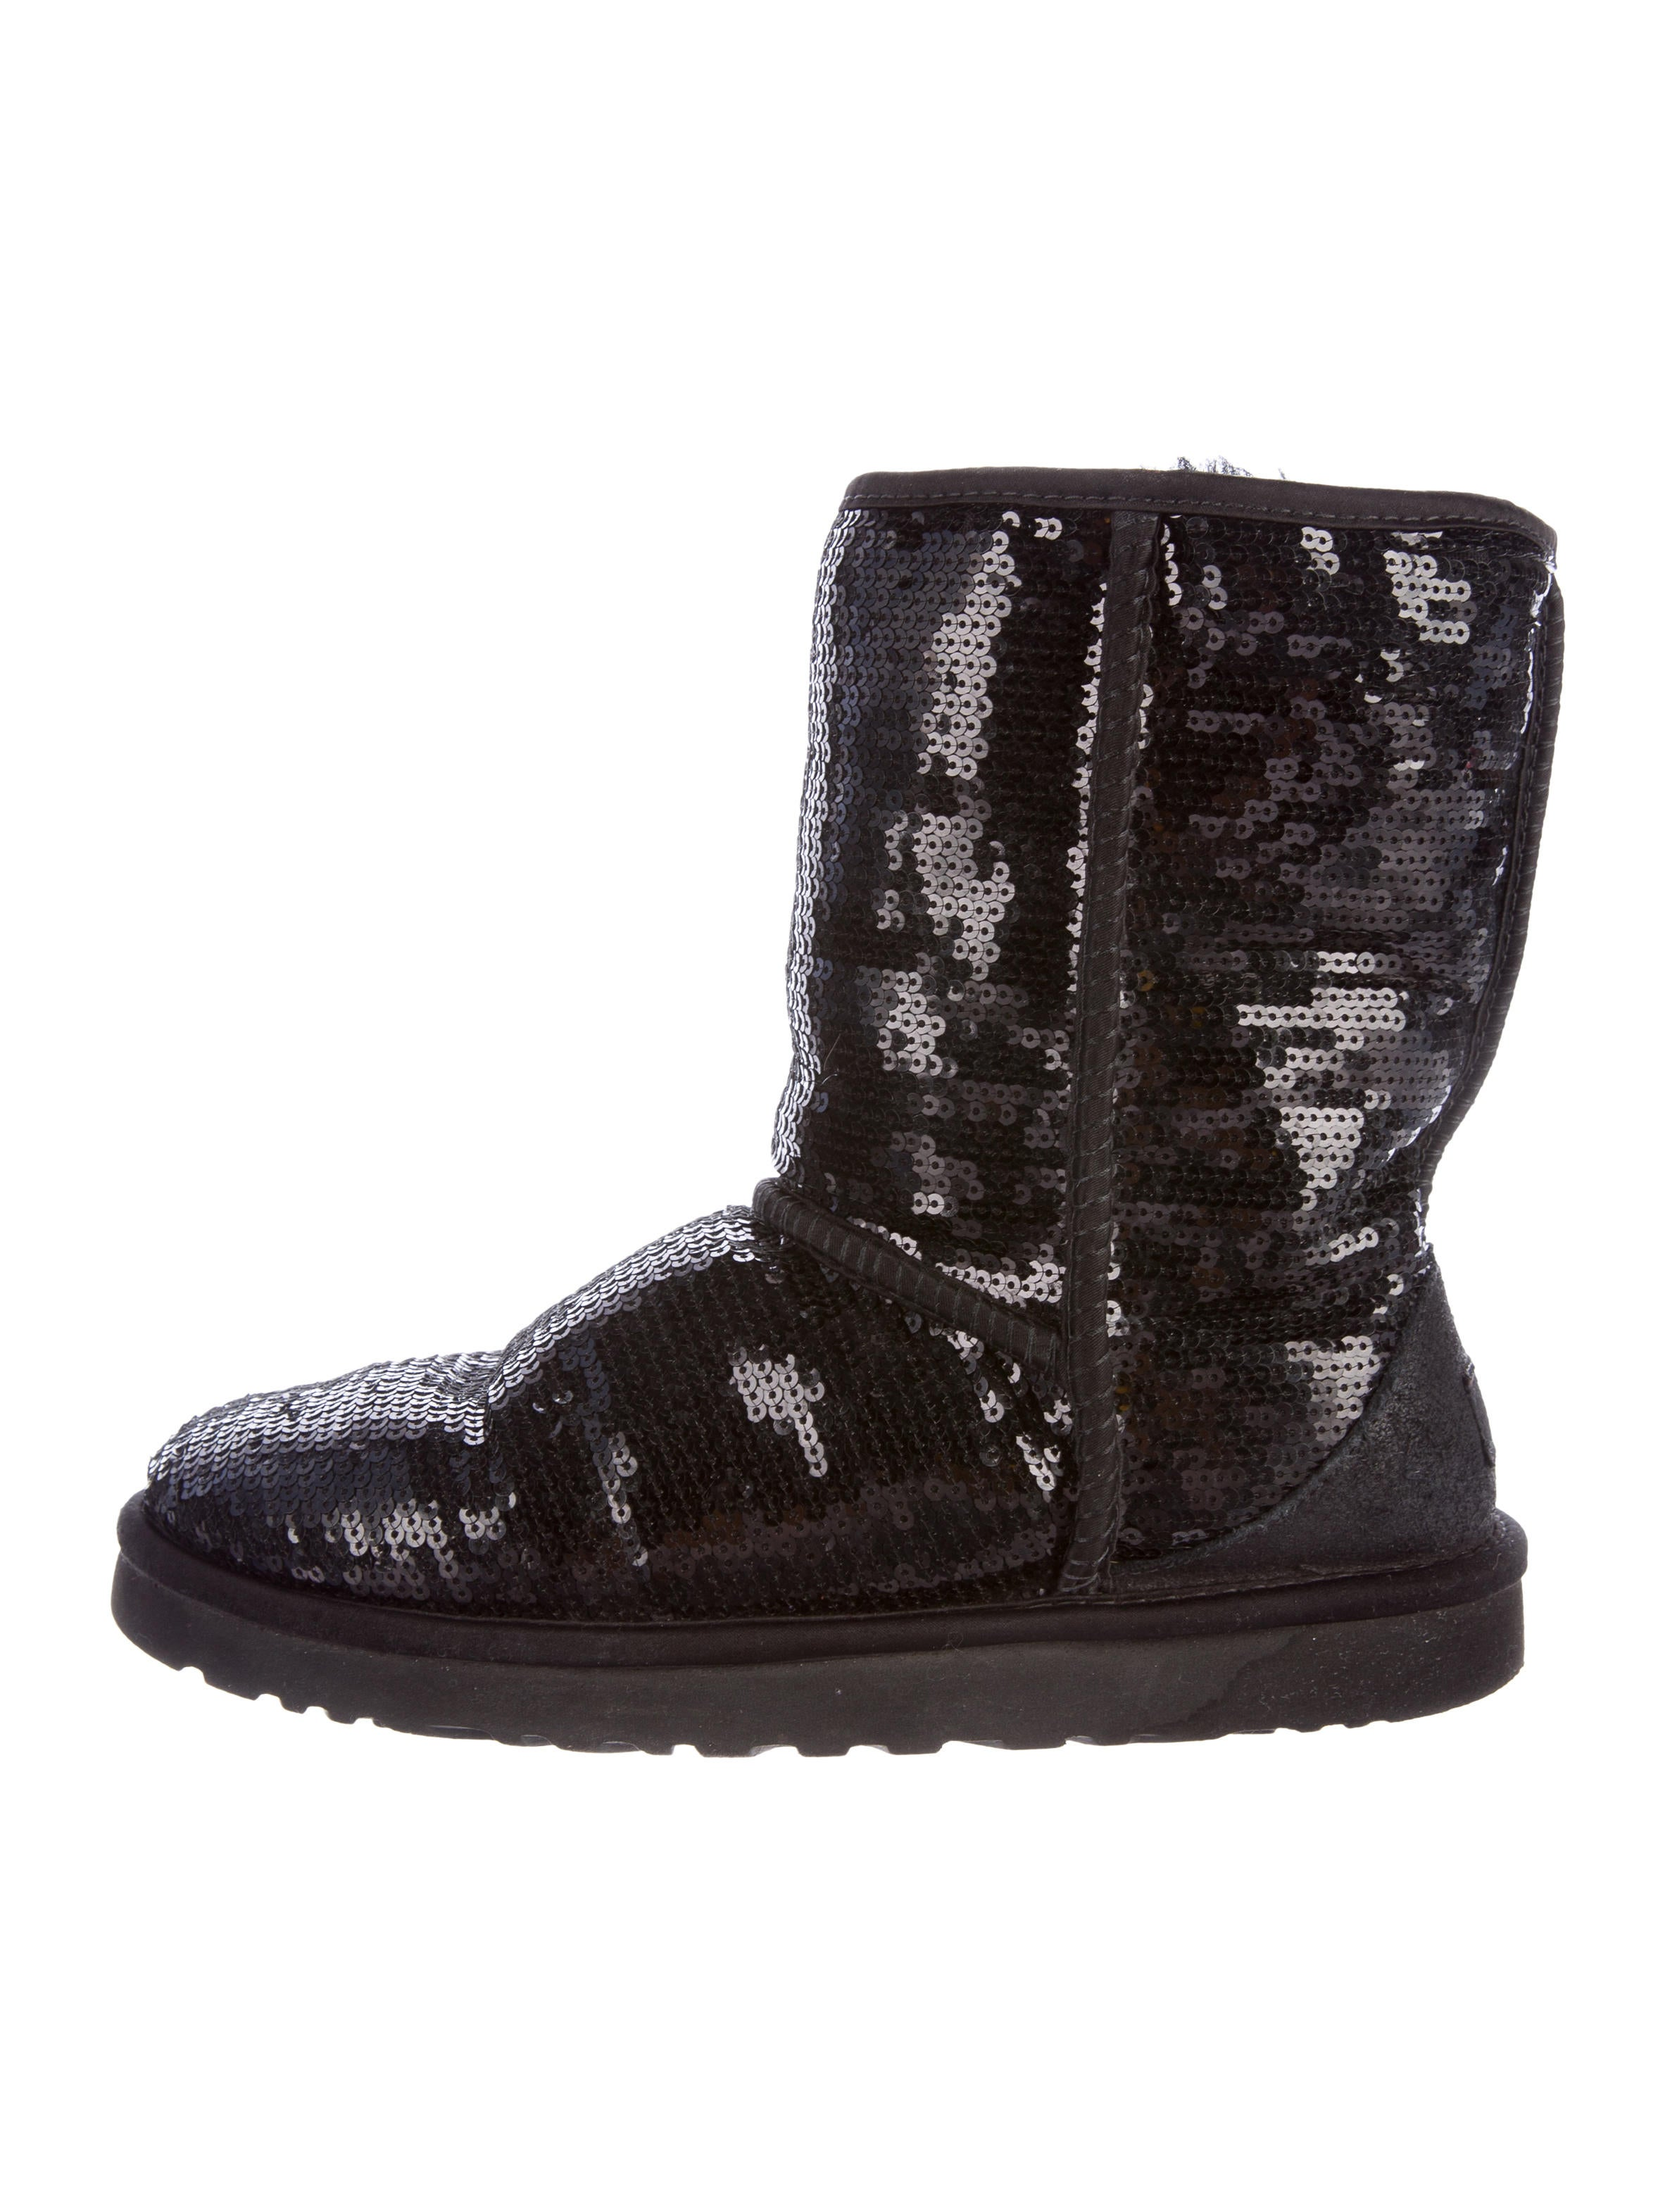 ugg australia sequin boots shoes wuugg20937